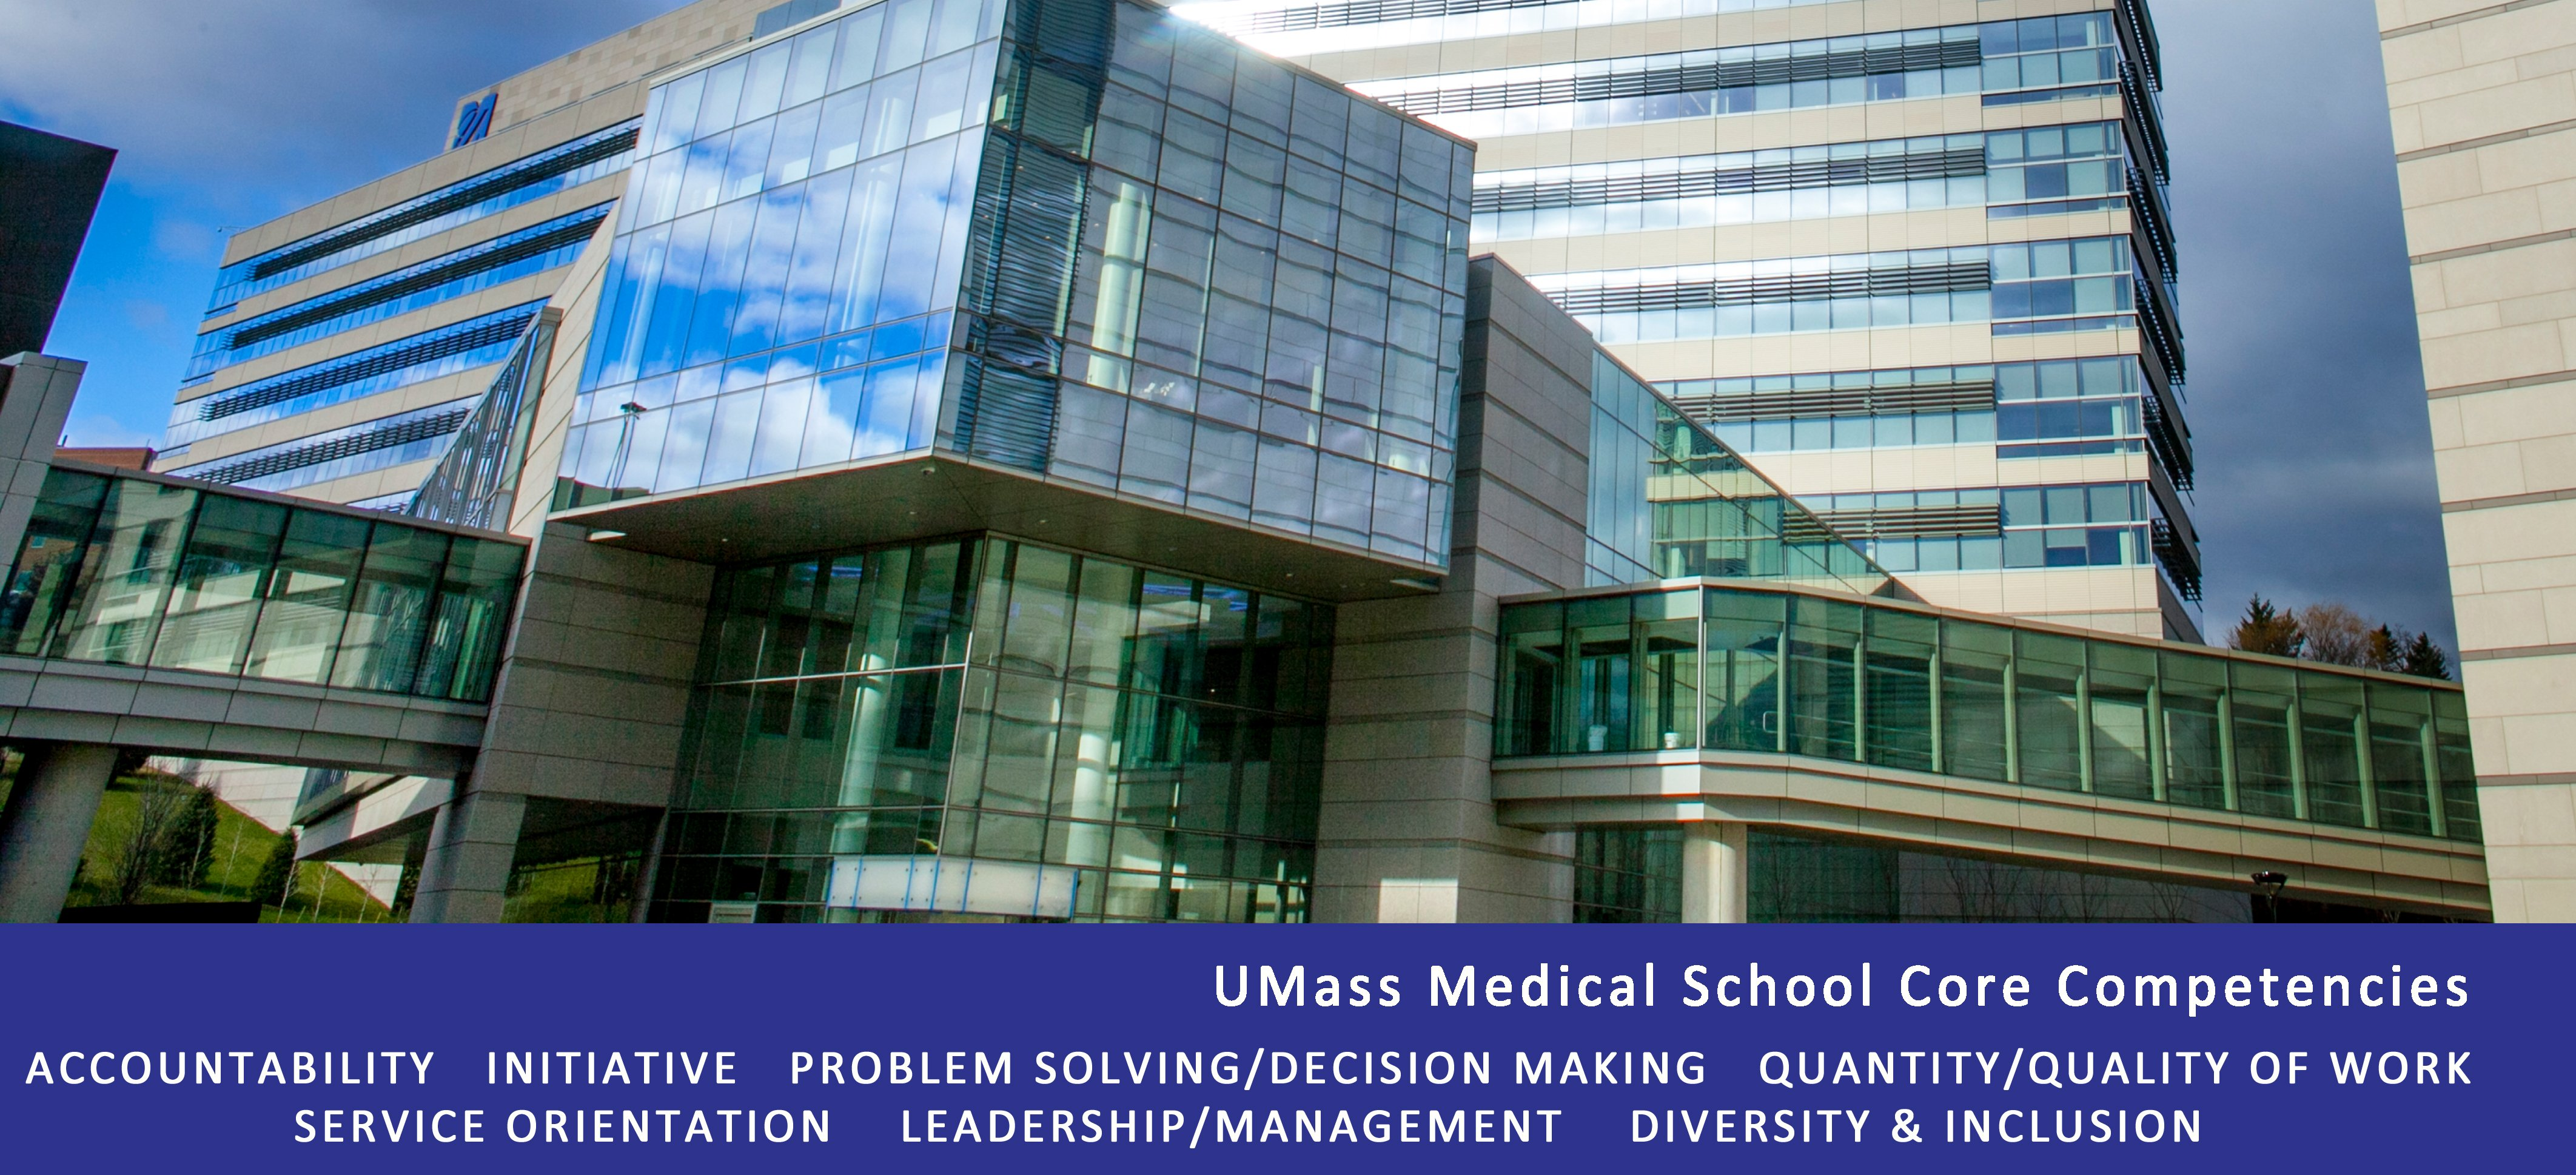 UMass Medical School Core Competencies